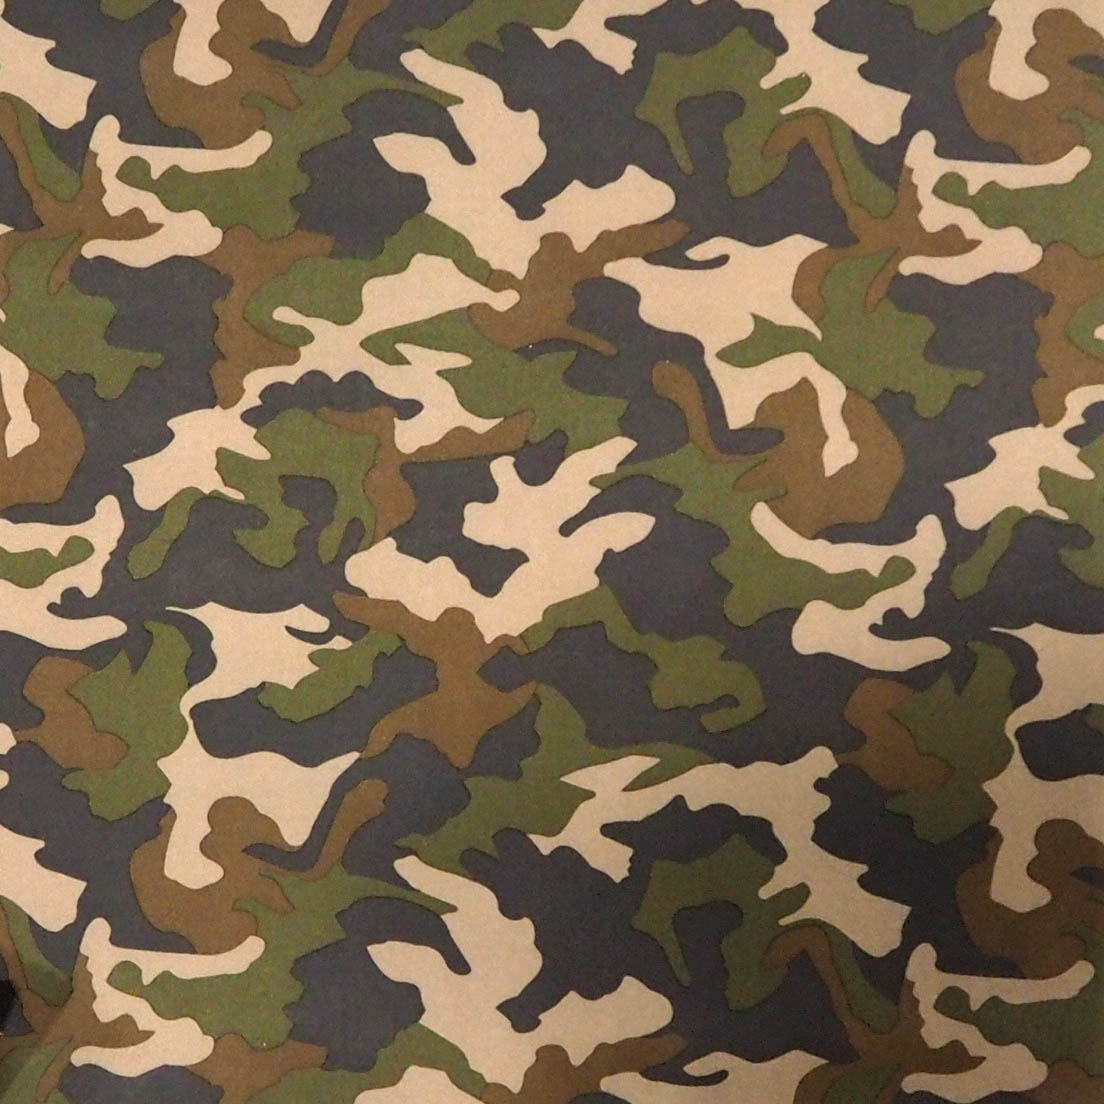 Camo Moro Green Tkanina poliestrowa z białą membraną